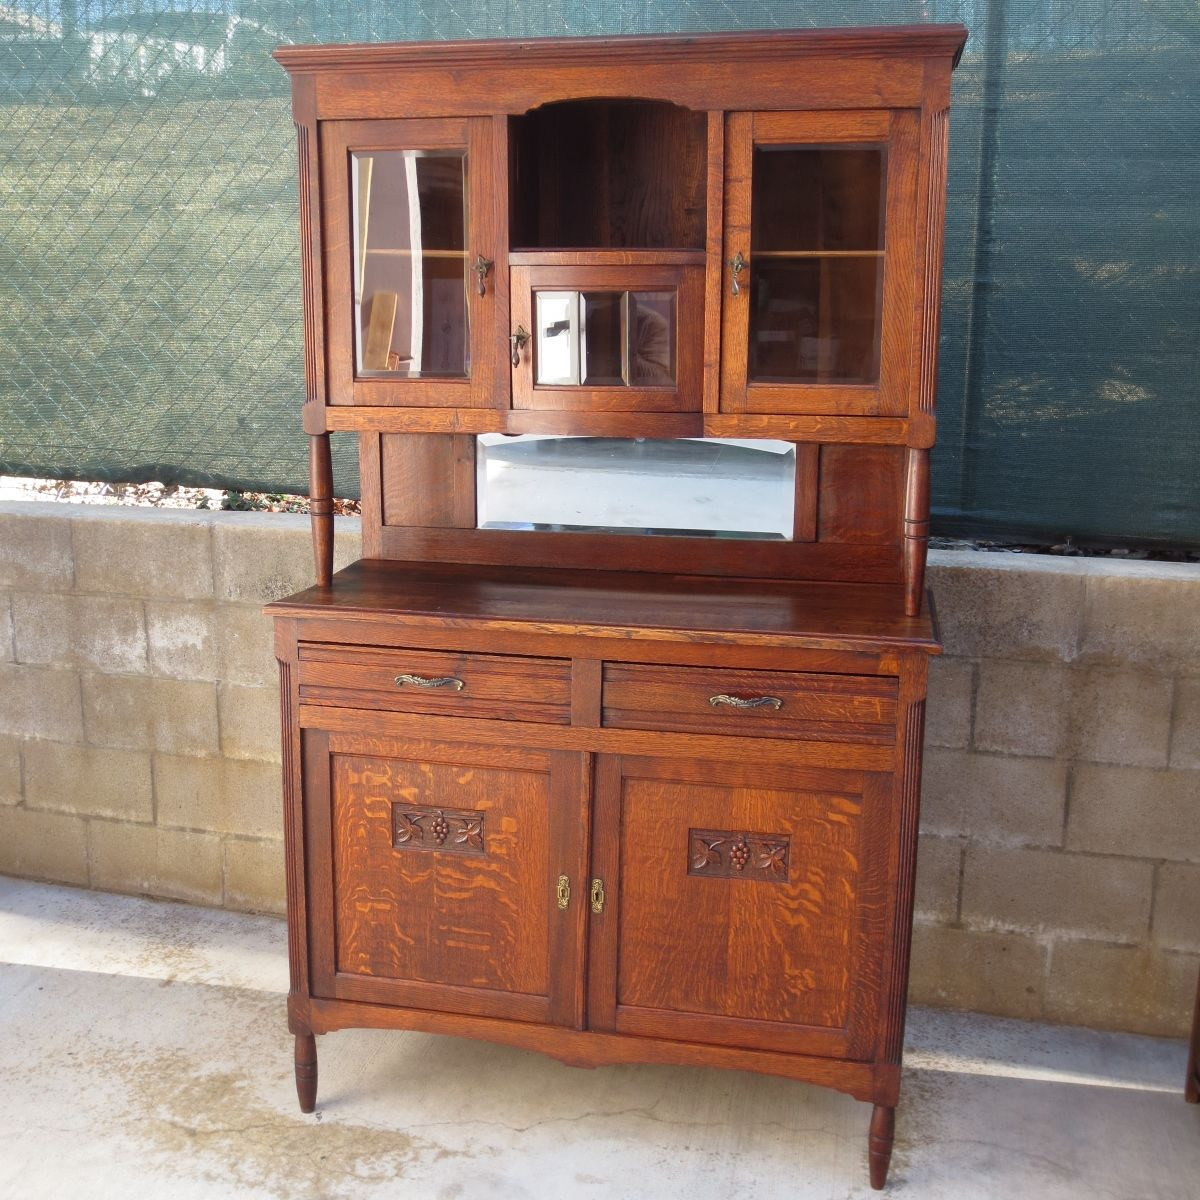 Antique furniture - Pin By Glynn Strate On Furniture And Furnishings Pinterest